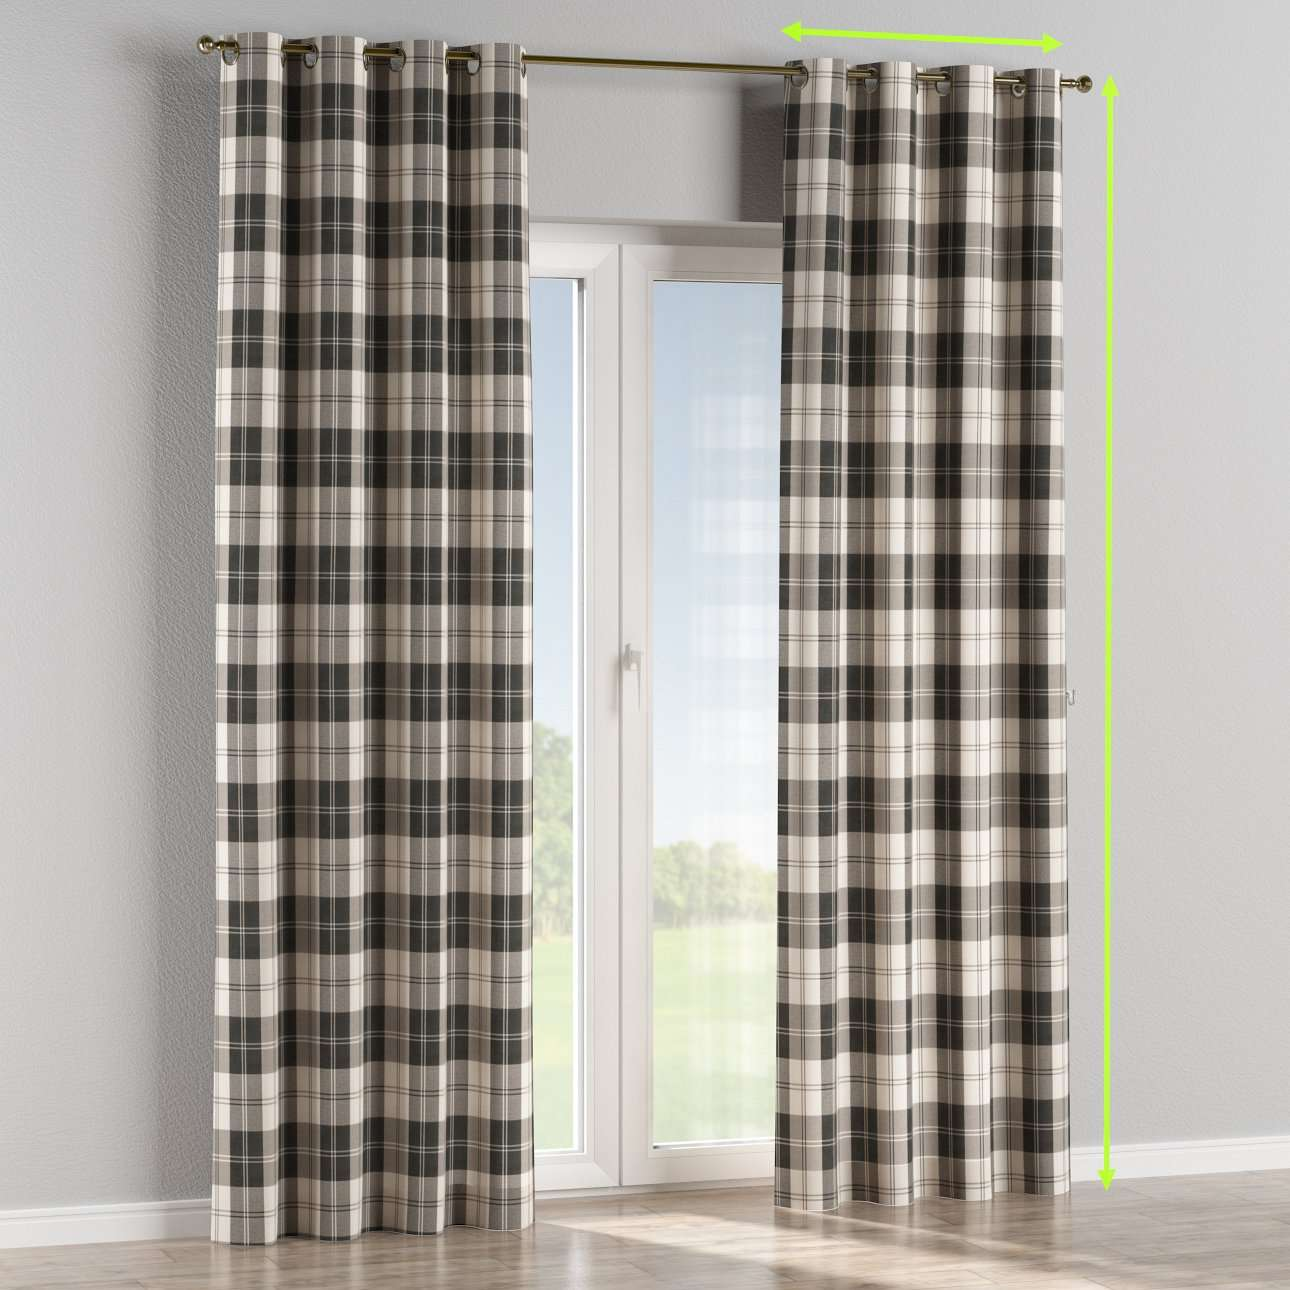 Eyelet lined curtains in collection Edinburgh, fabric: 115-74